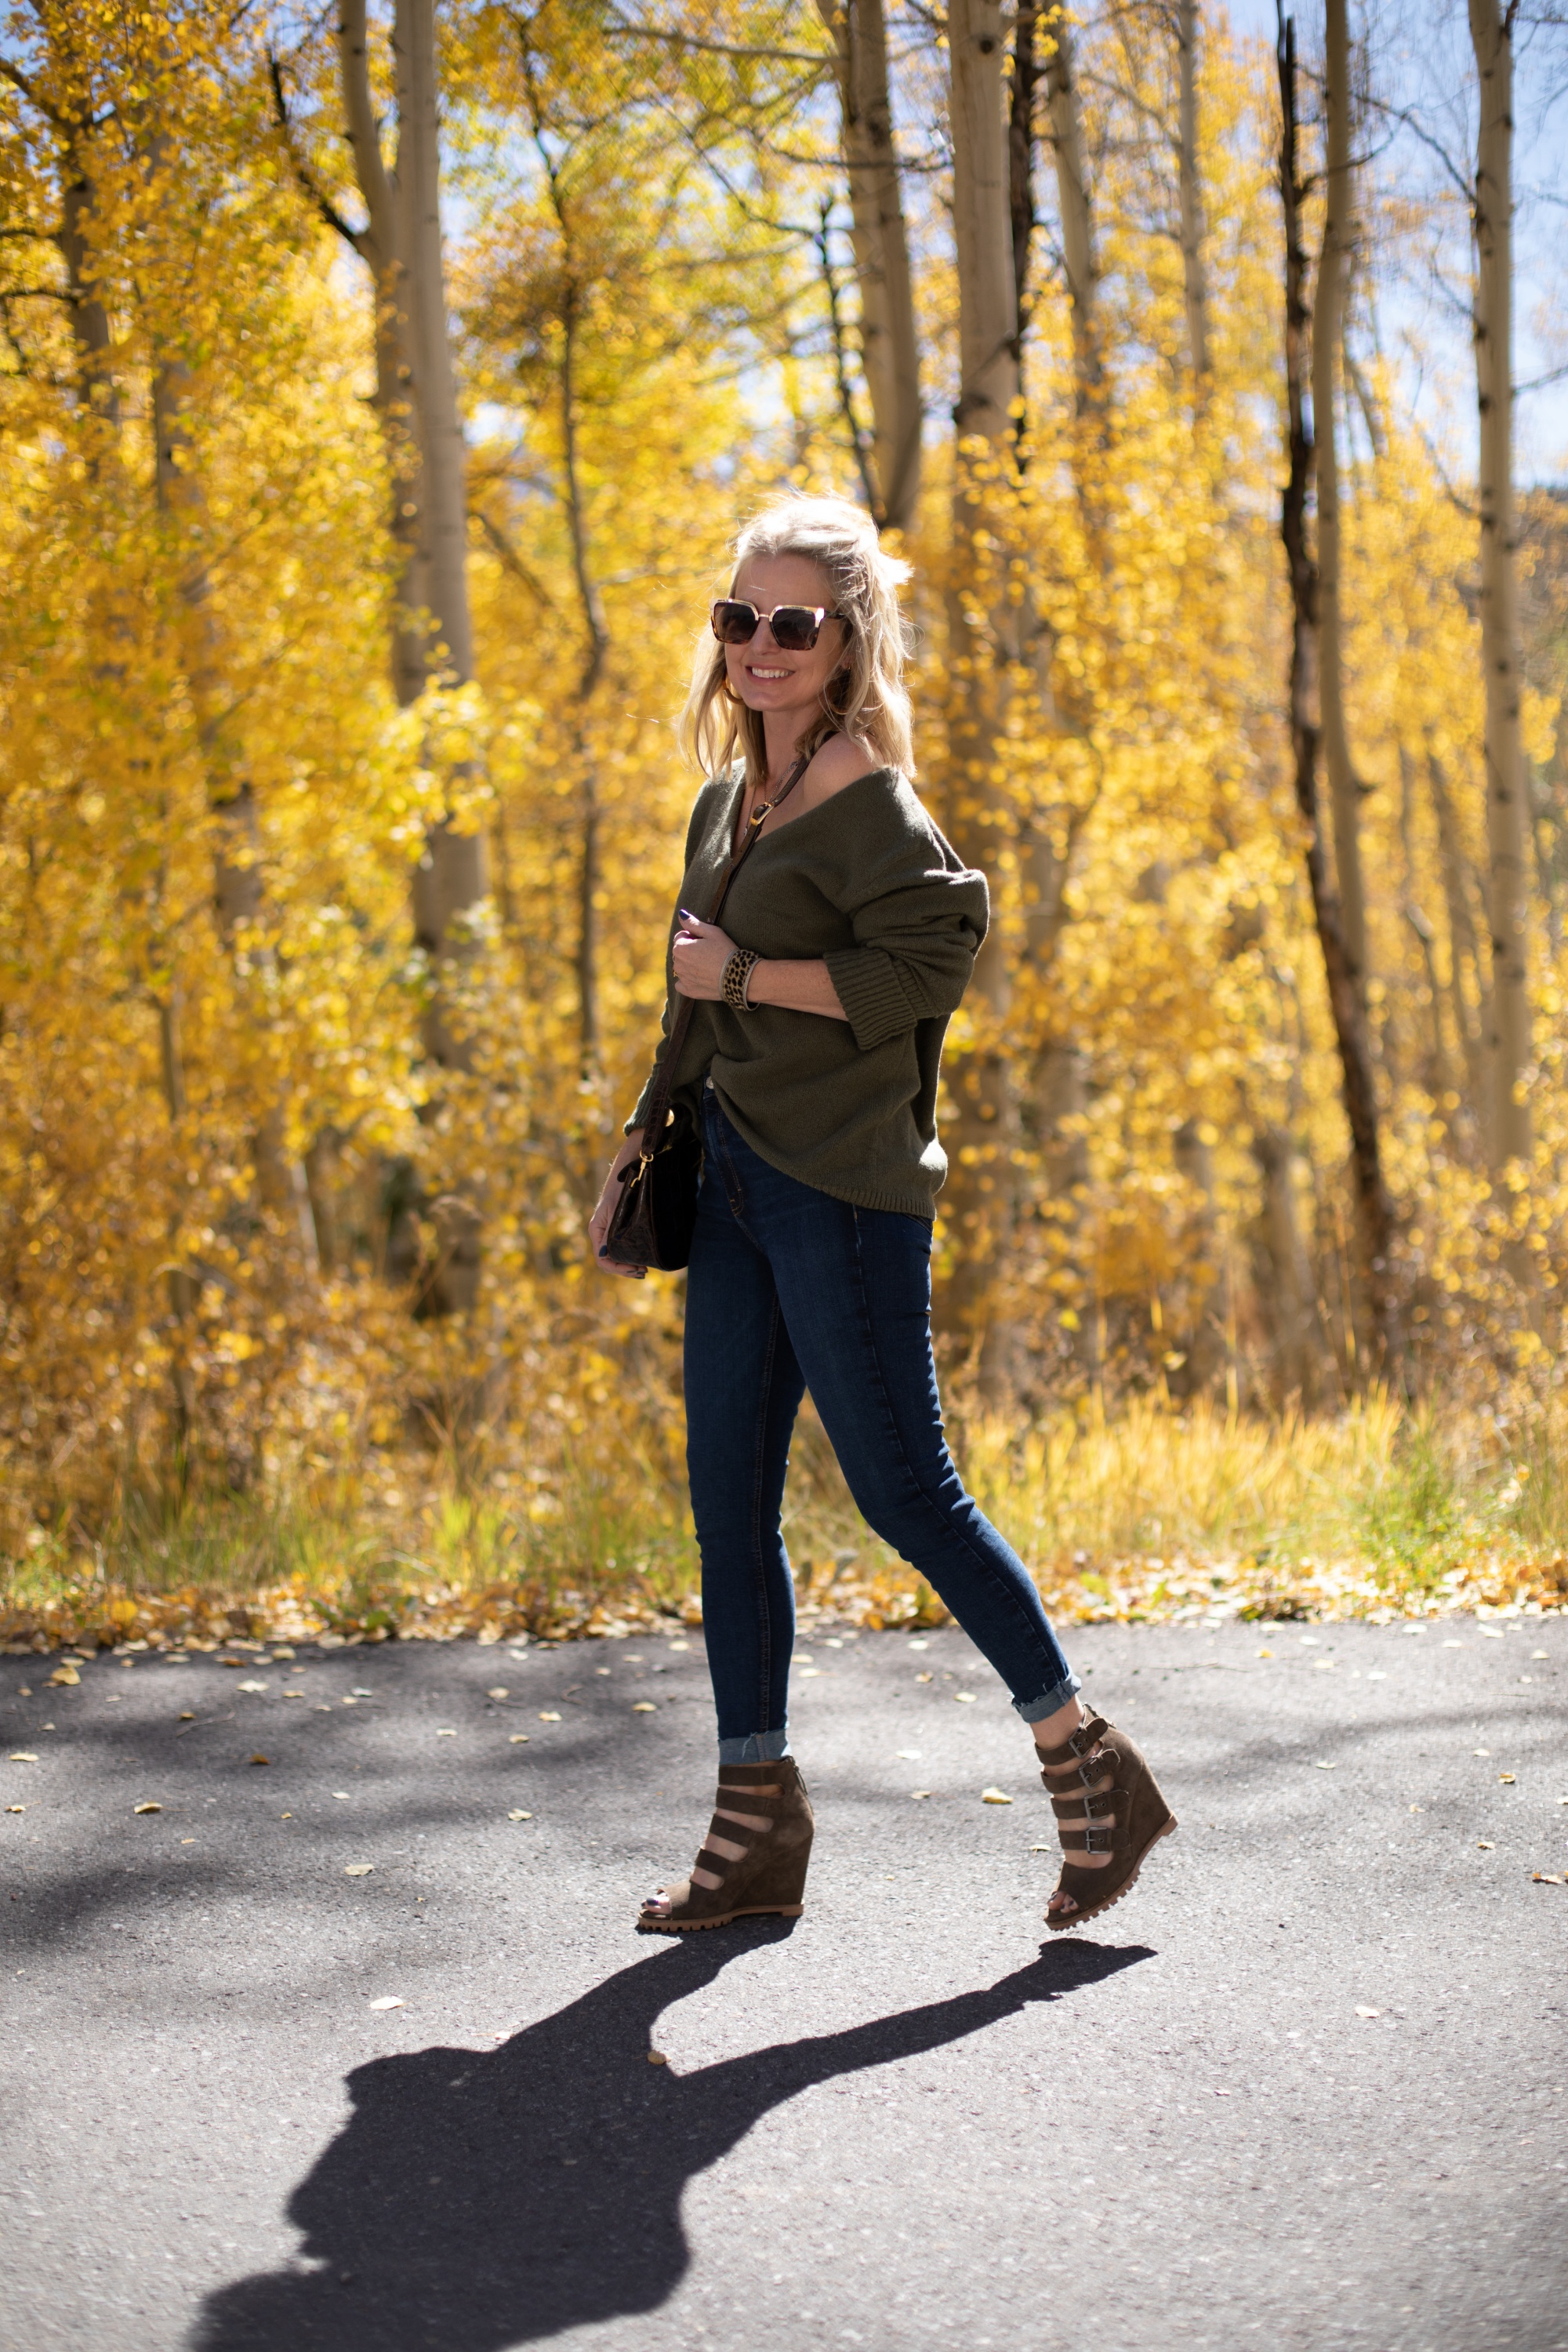 Shoes For Busy Women, Fashion blogger Erin Busbee of BusbeeStyle.com wearing Linea Paolo Wisteria Buckle Wedge Sandals with rag & bone skinny jeans, Something Navy green sweater, Staud Madeline Croc Embossed crossbody, and Quay sunglasses in Telluride, CO